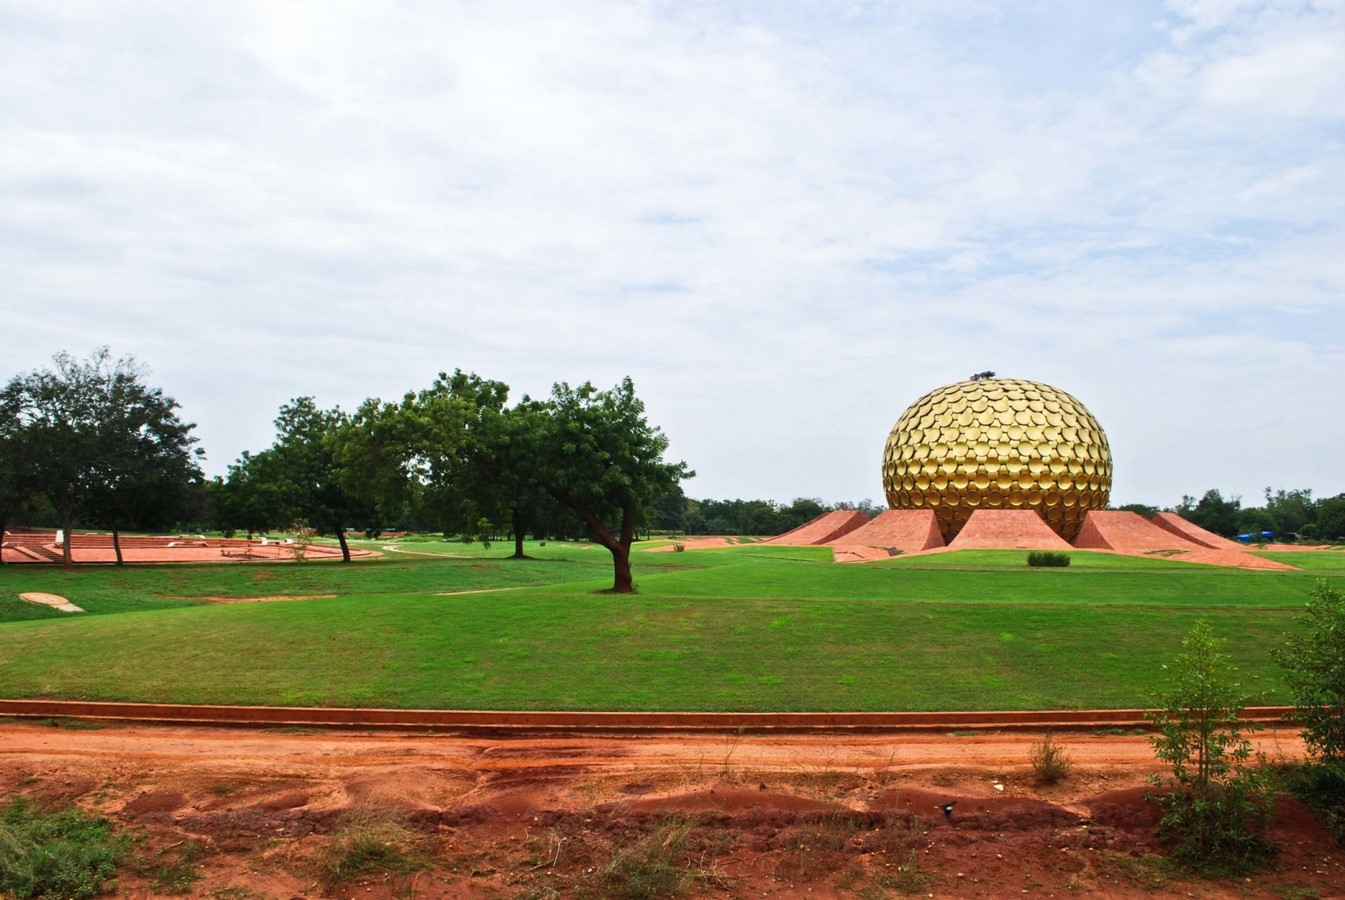 Paolo Tommasi's contribution in shaping Auroville- Sheet17